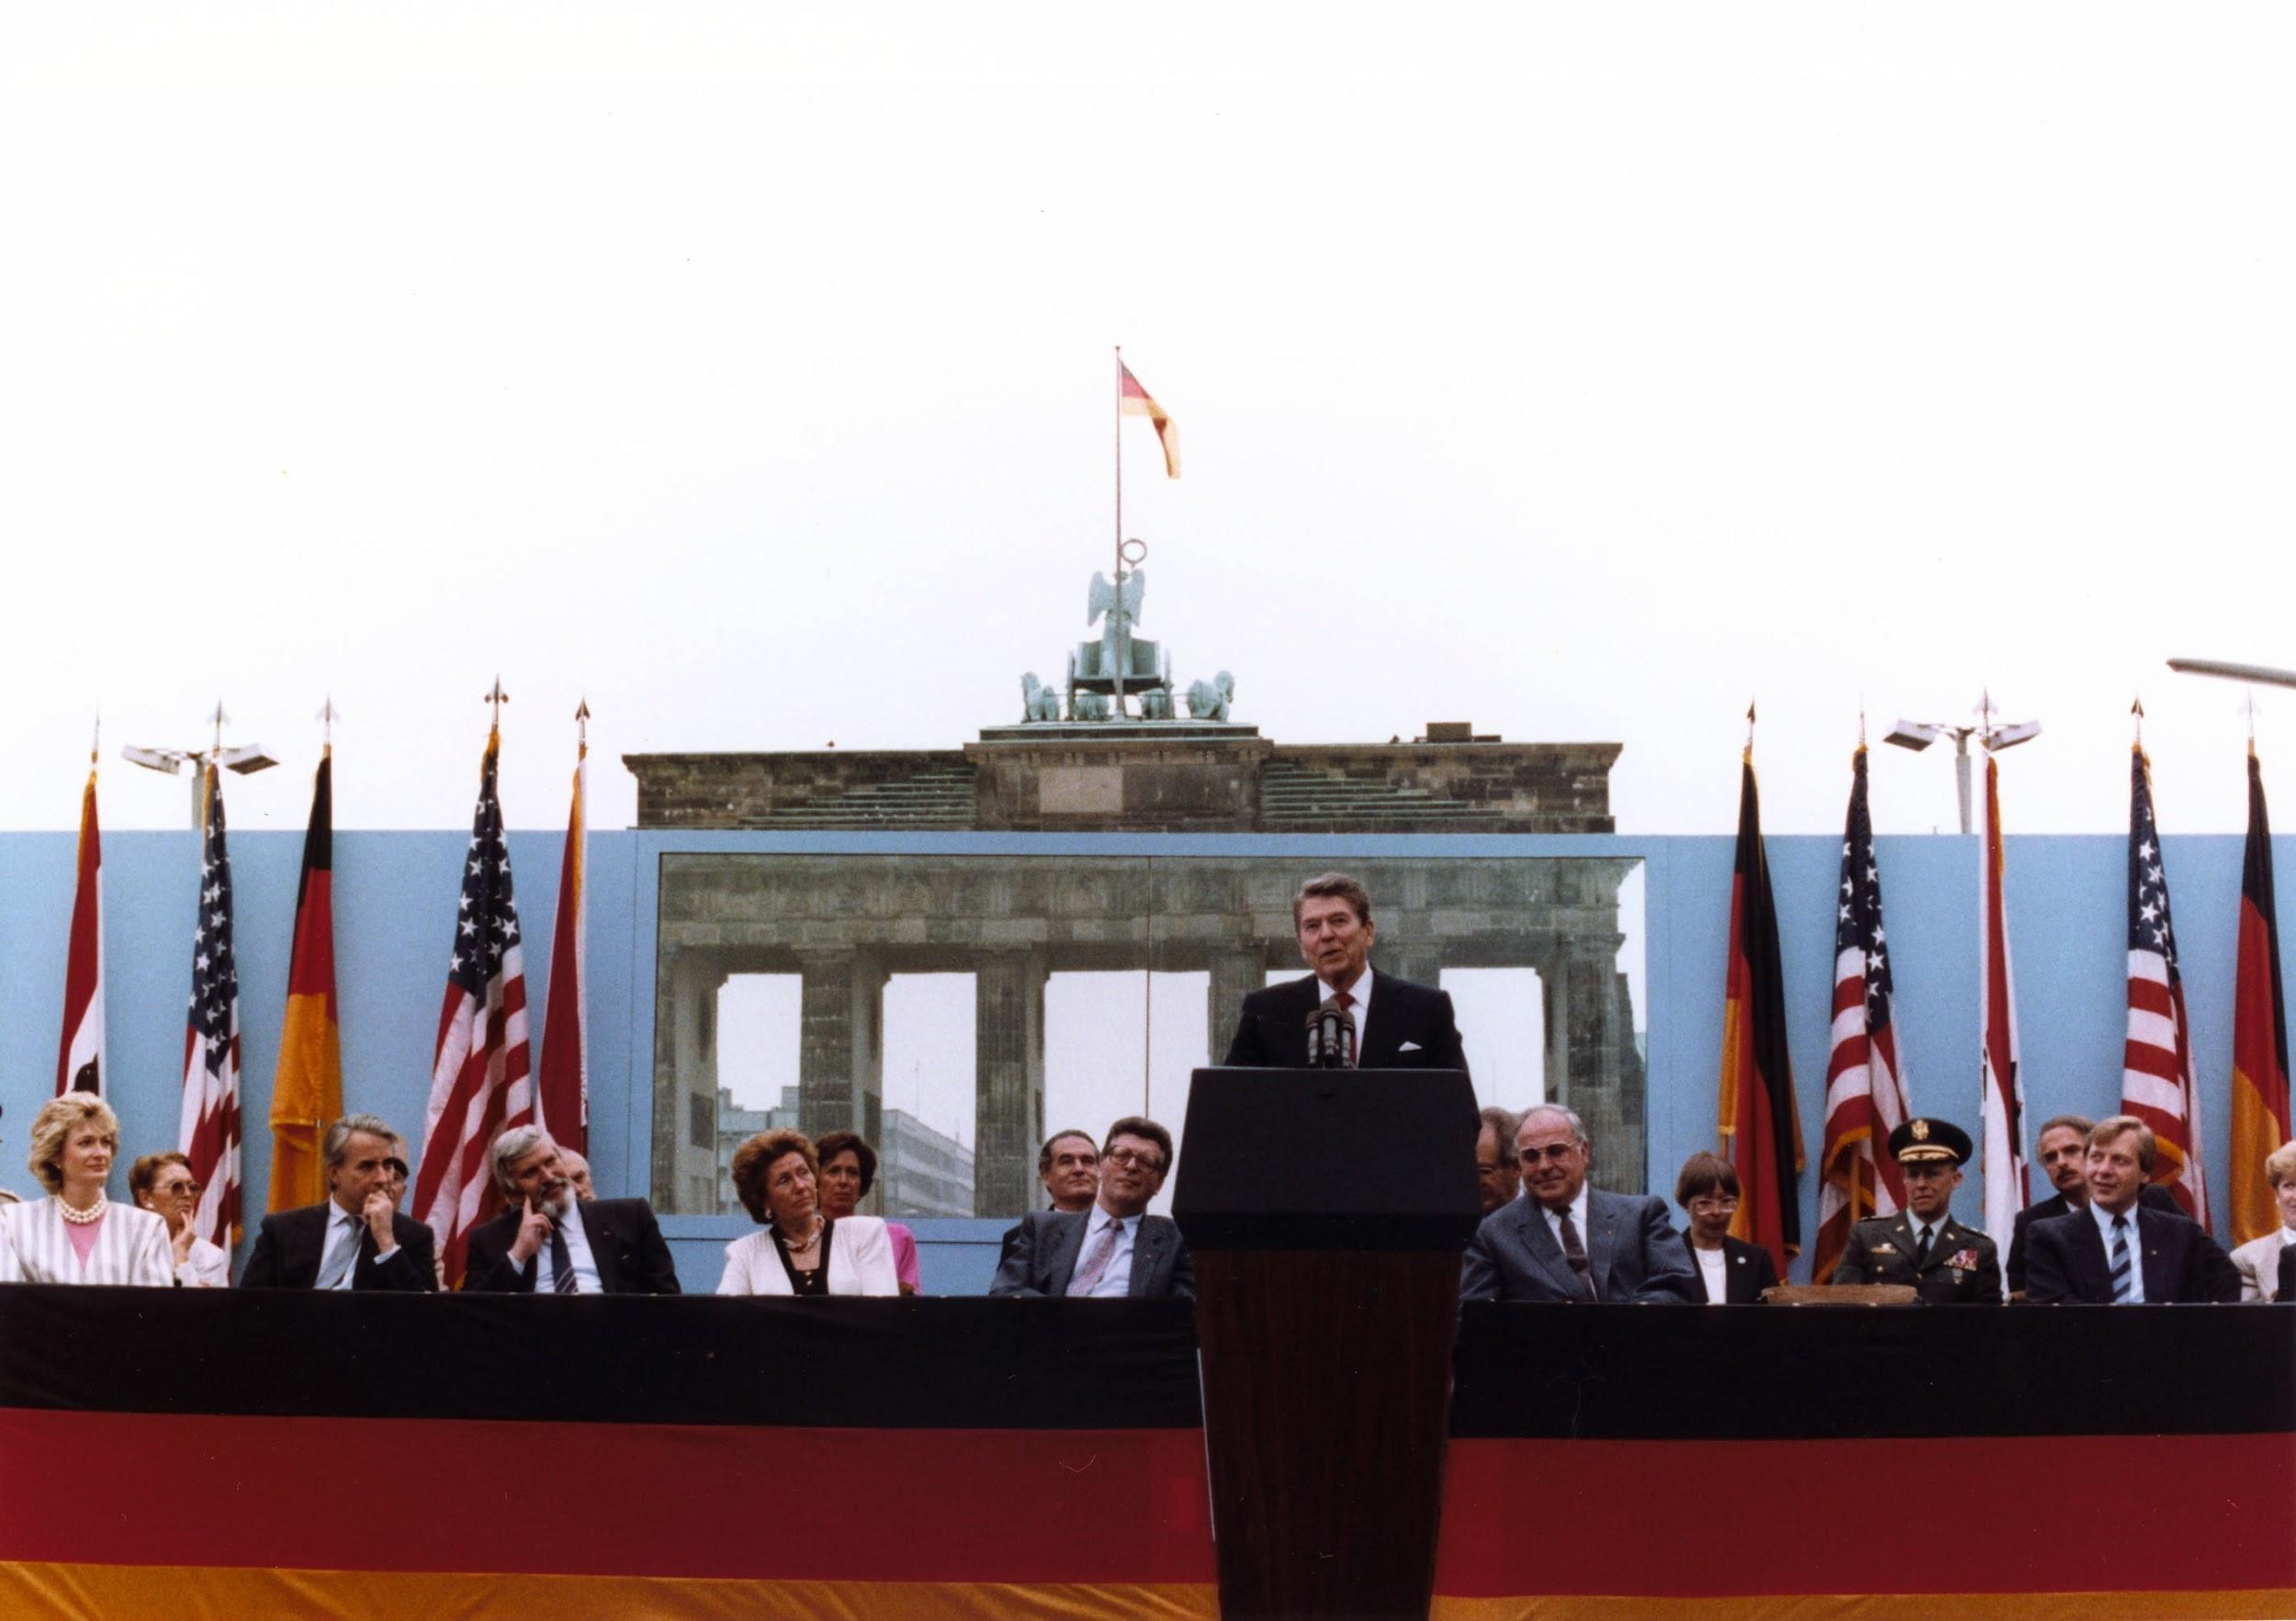 Ronald Reagan spoke in front of the Brandenburg Gate and the Berlin Wall on June 12, 1987.